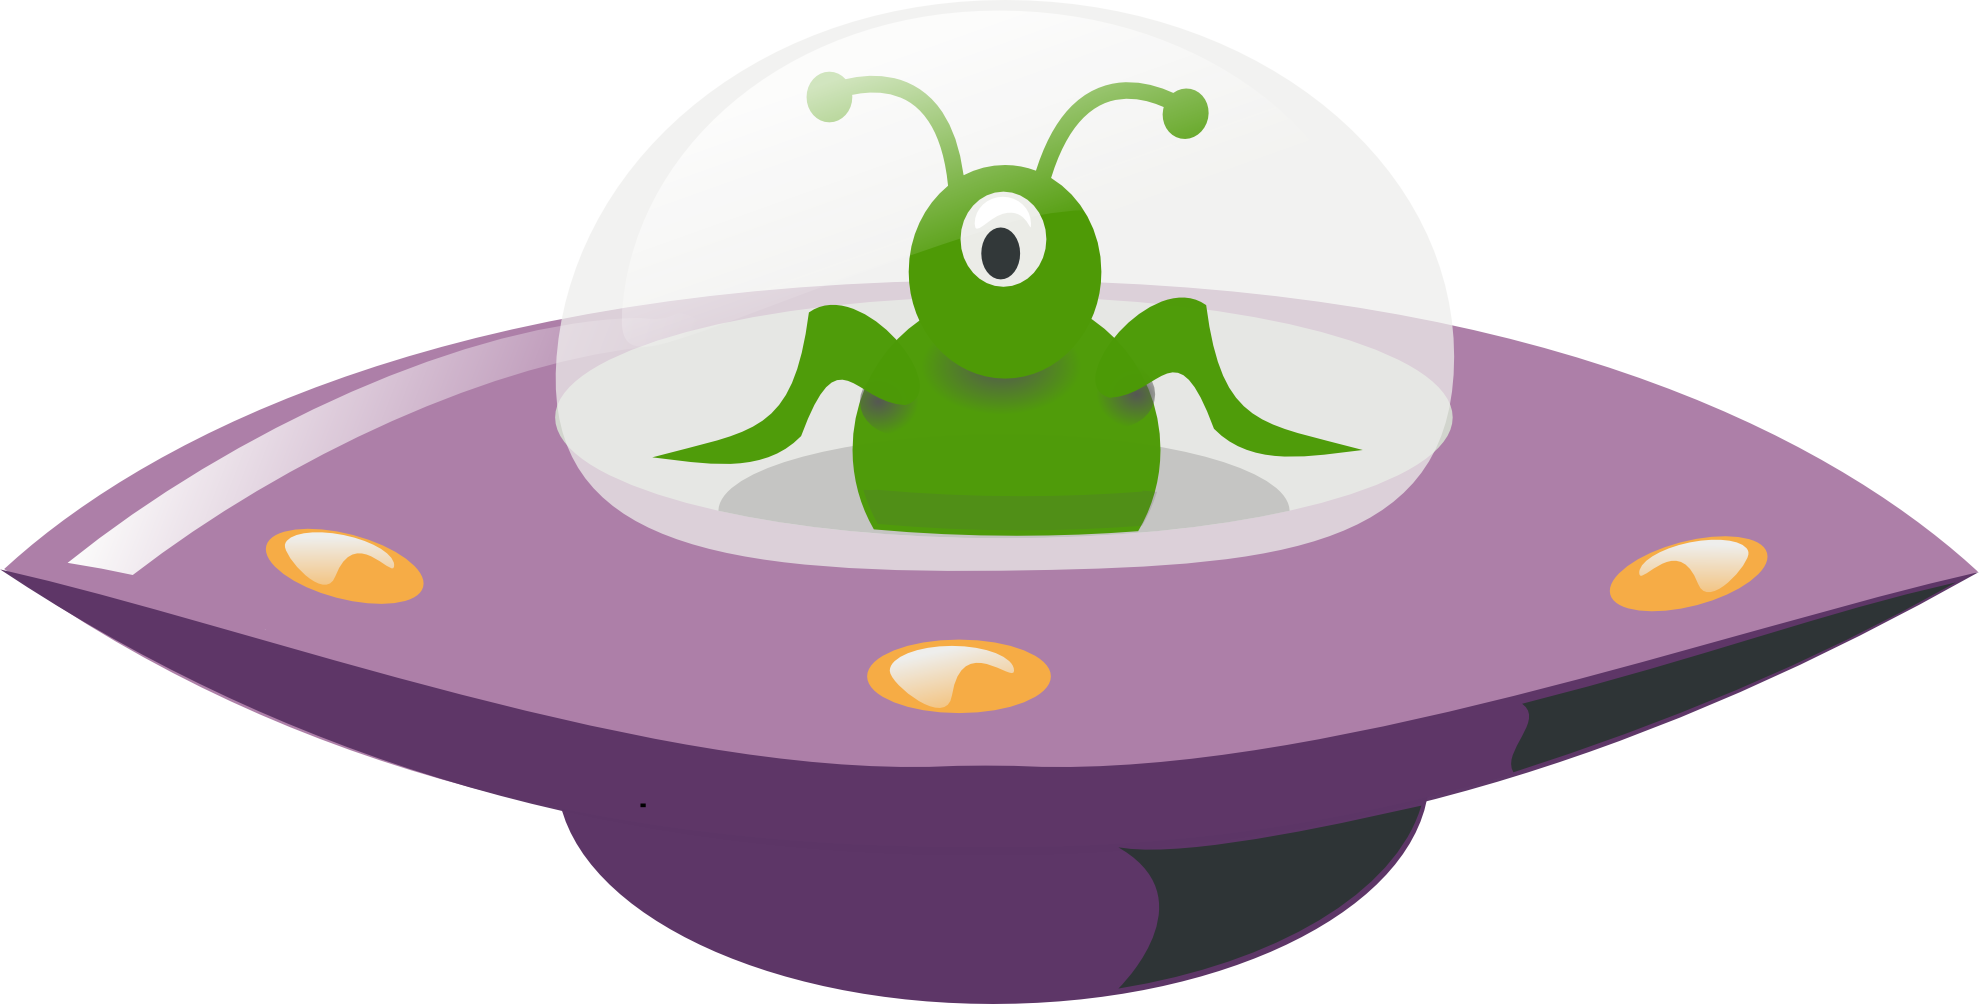 UFO clipart #15, Download drawings